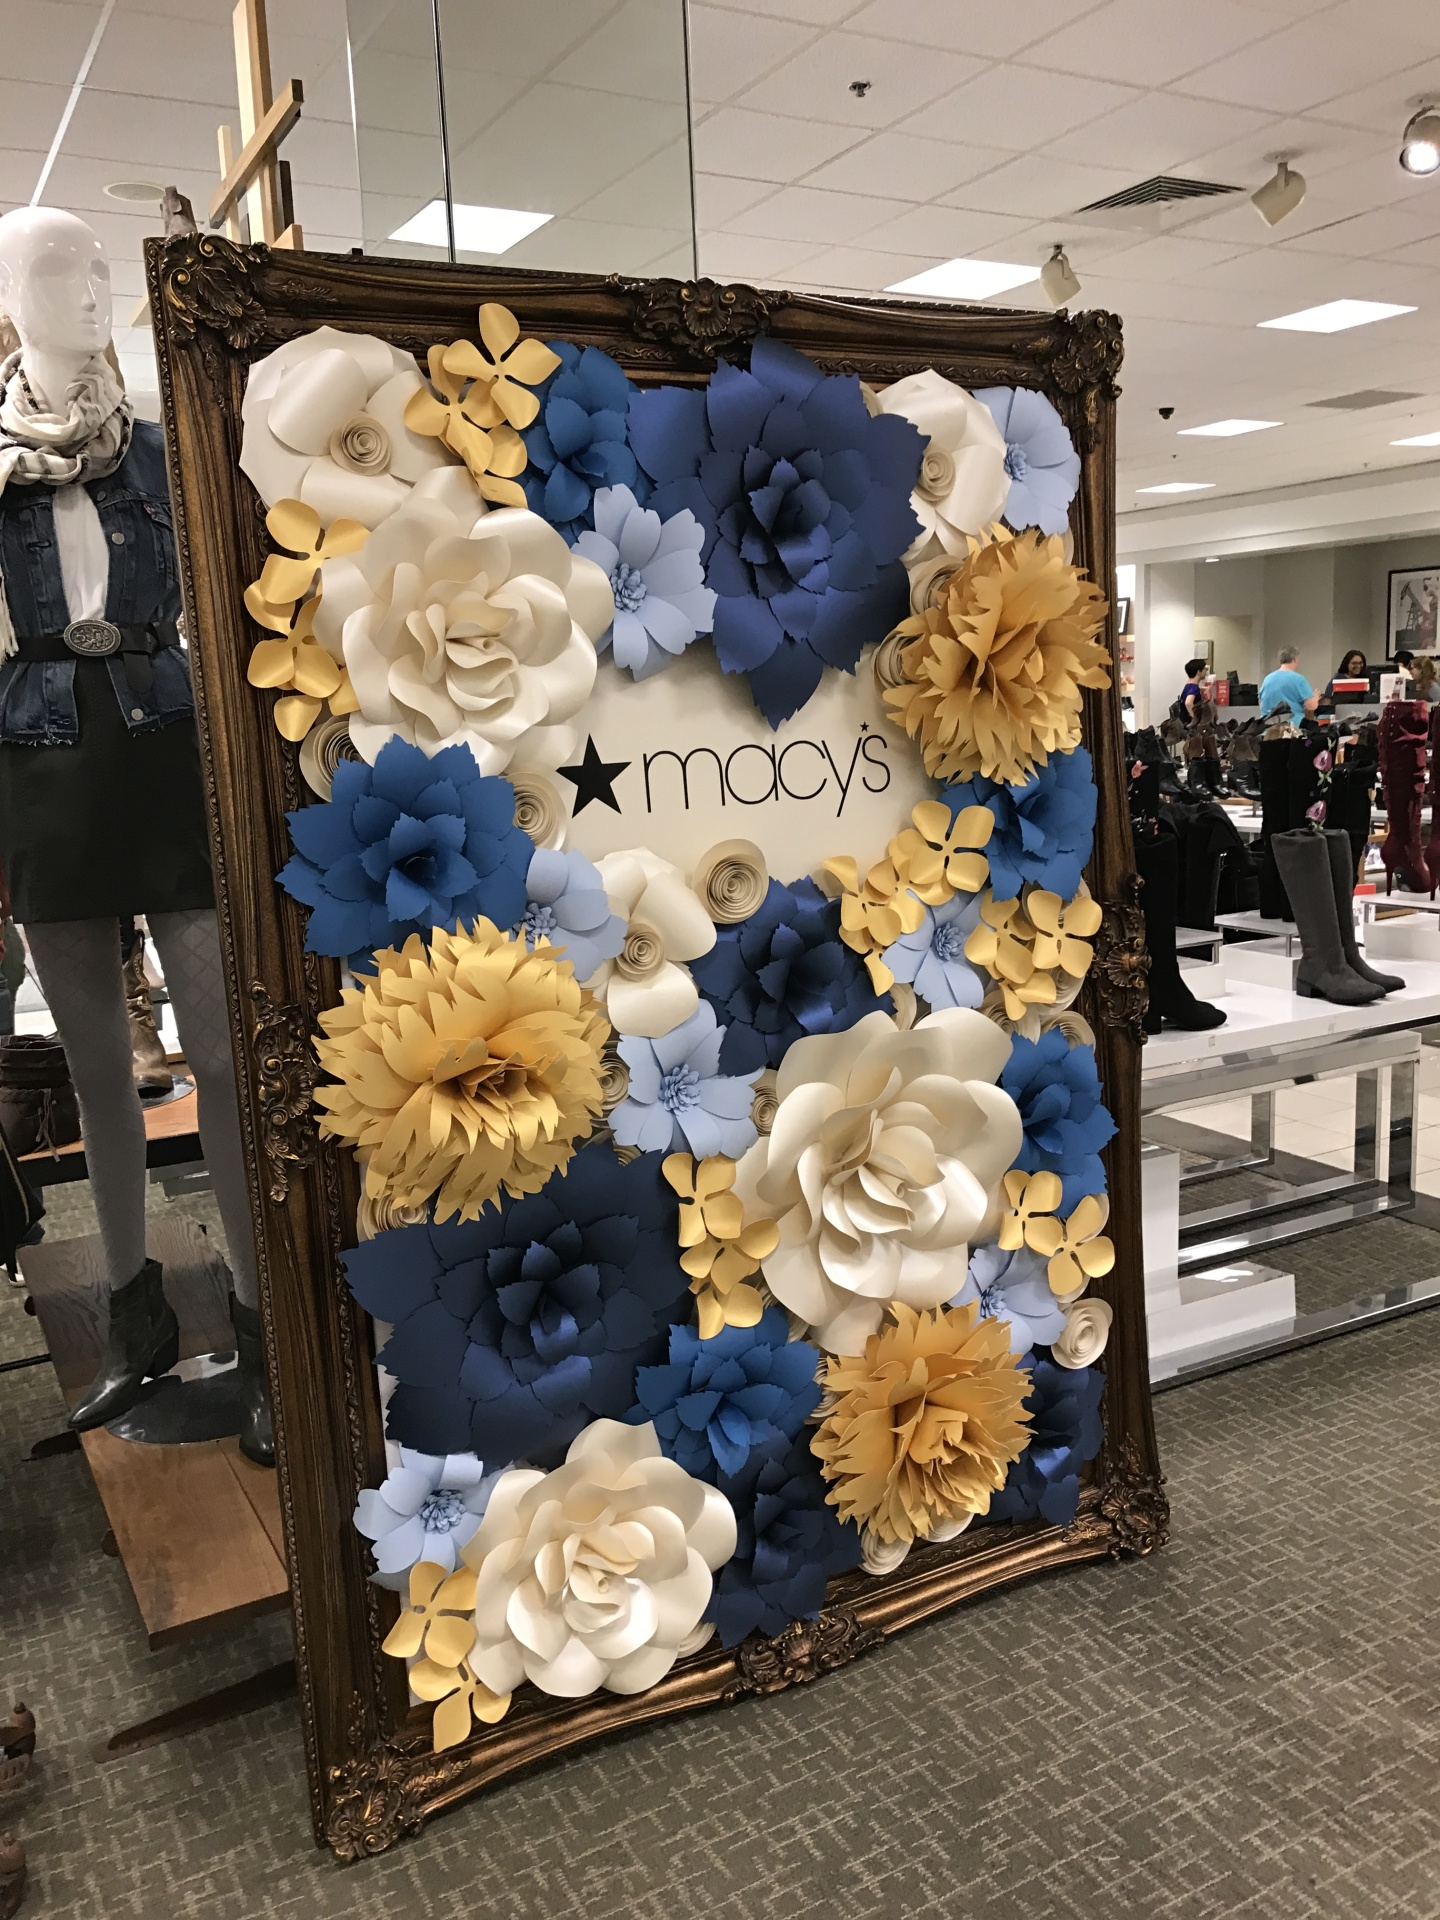 Corporate event, Macy's, fundraiser, event backdrop, wedding, quinceanera, bridal shower, Houston Paper Flowers, Houston Paper flower rental, Paper flower wall rental,